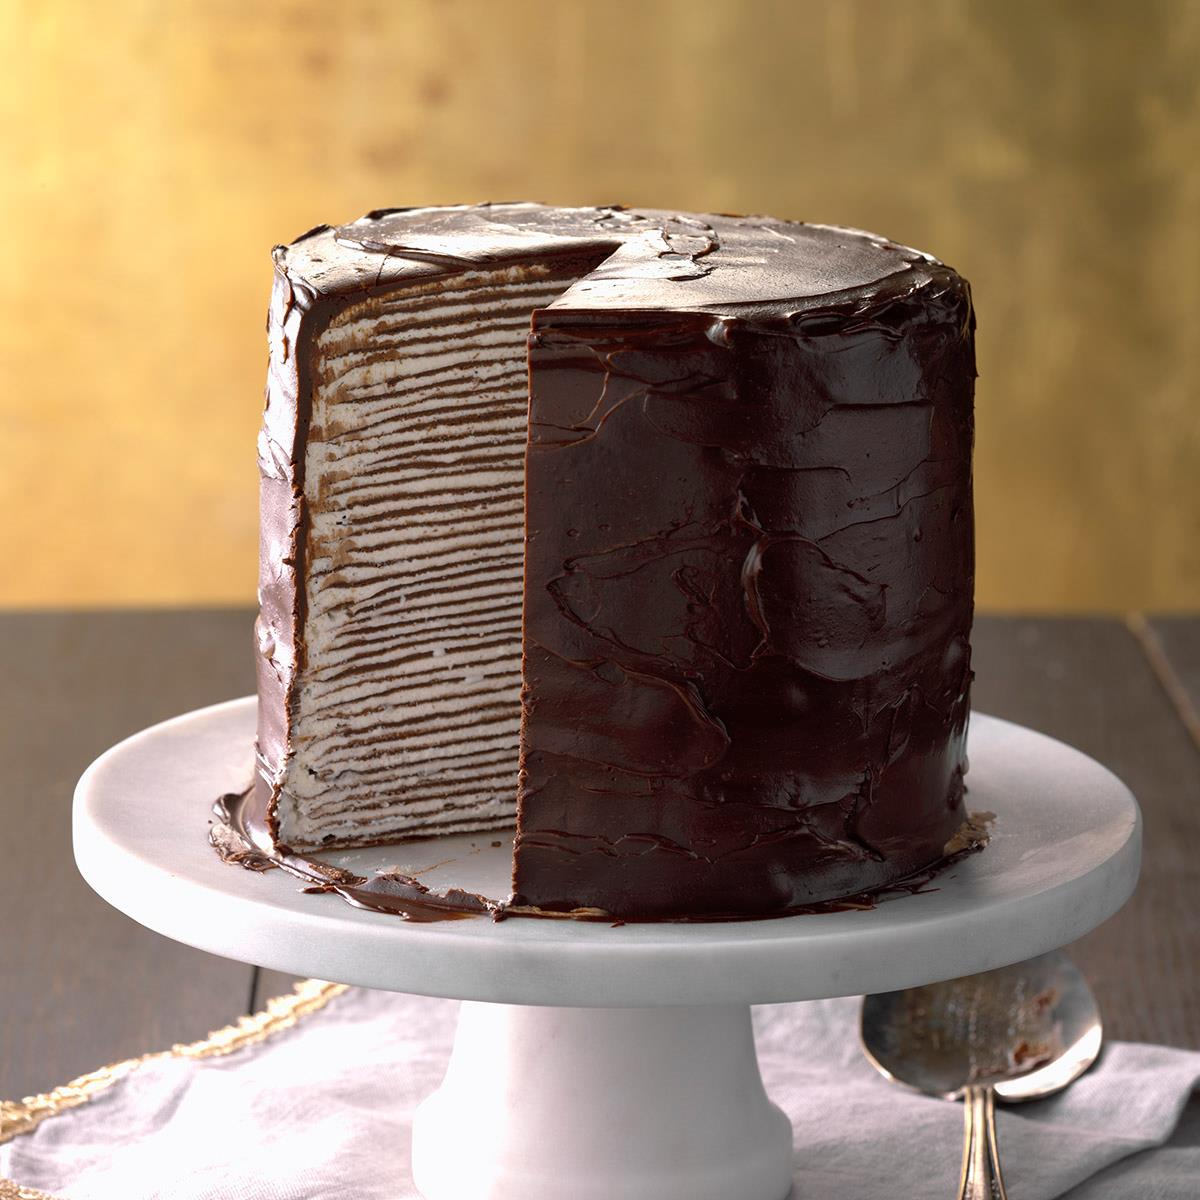 Decadent Chocolate Crepe Cake Recipe How To Make It Taste Of Home